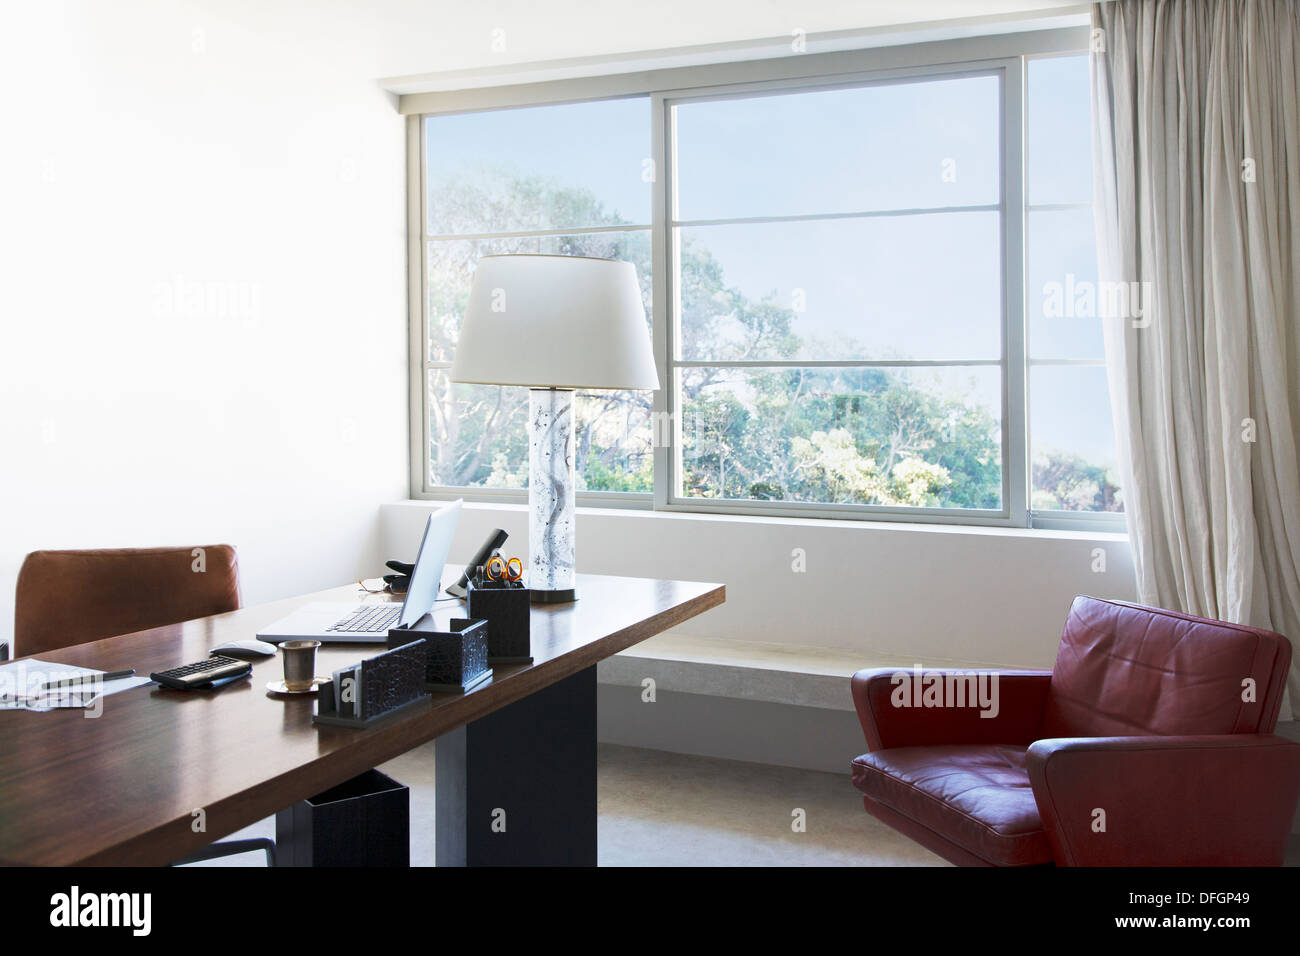 Laptop and lamp on desk in office - Stock Image